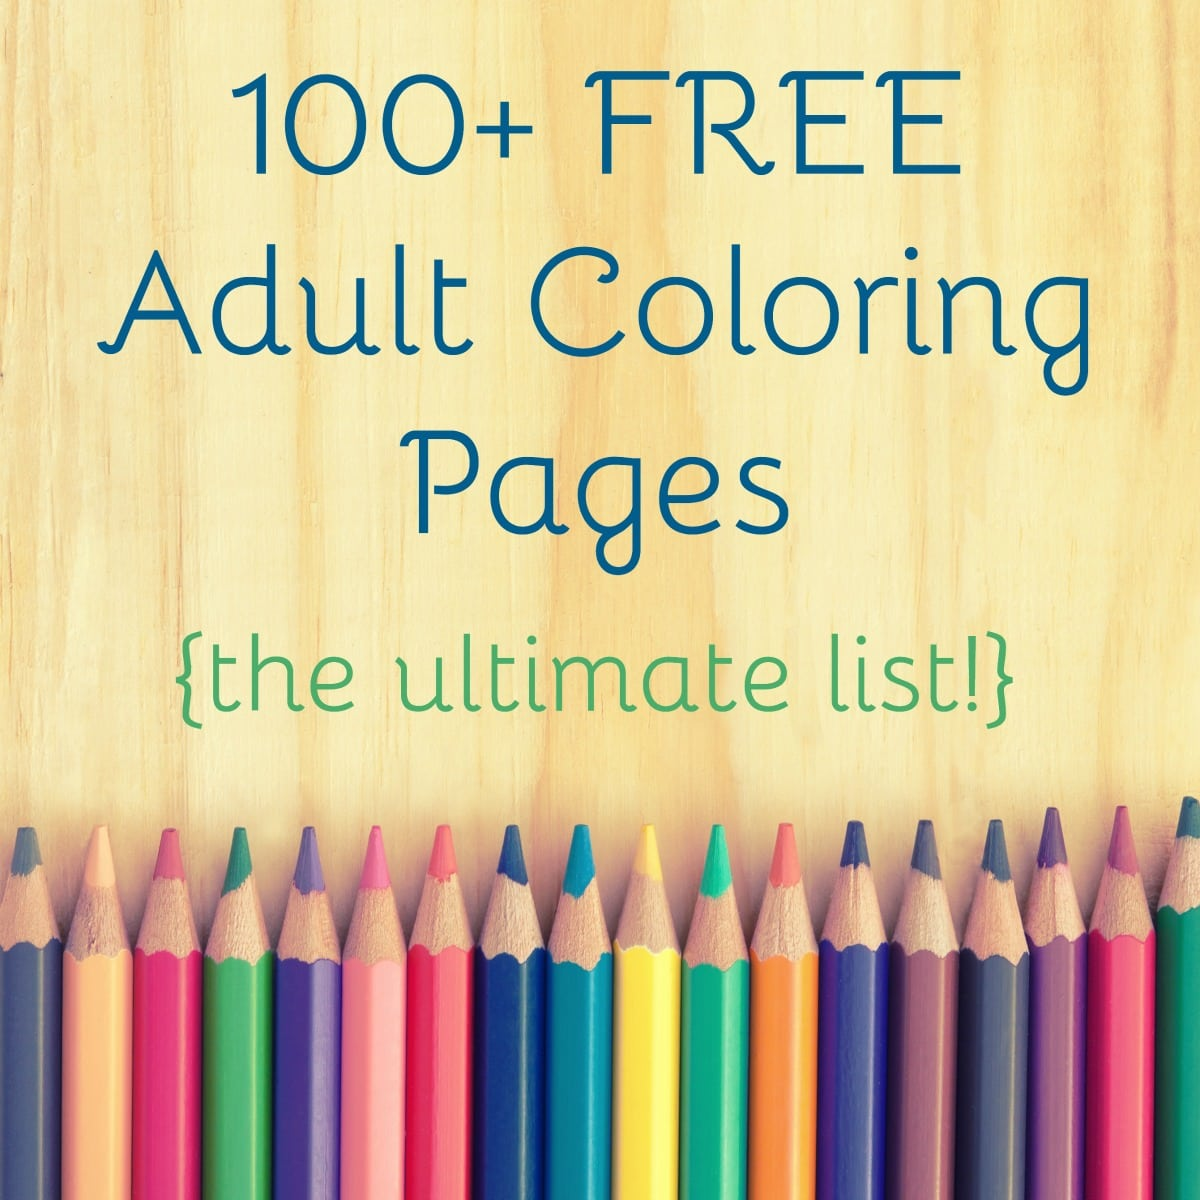 Free Adult Coloring Pages On Coloring Pages For Adults Free On